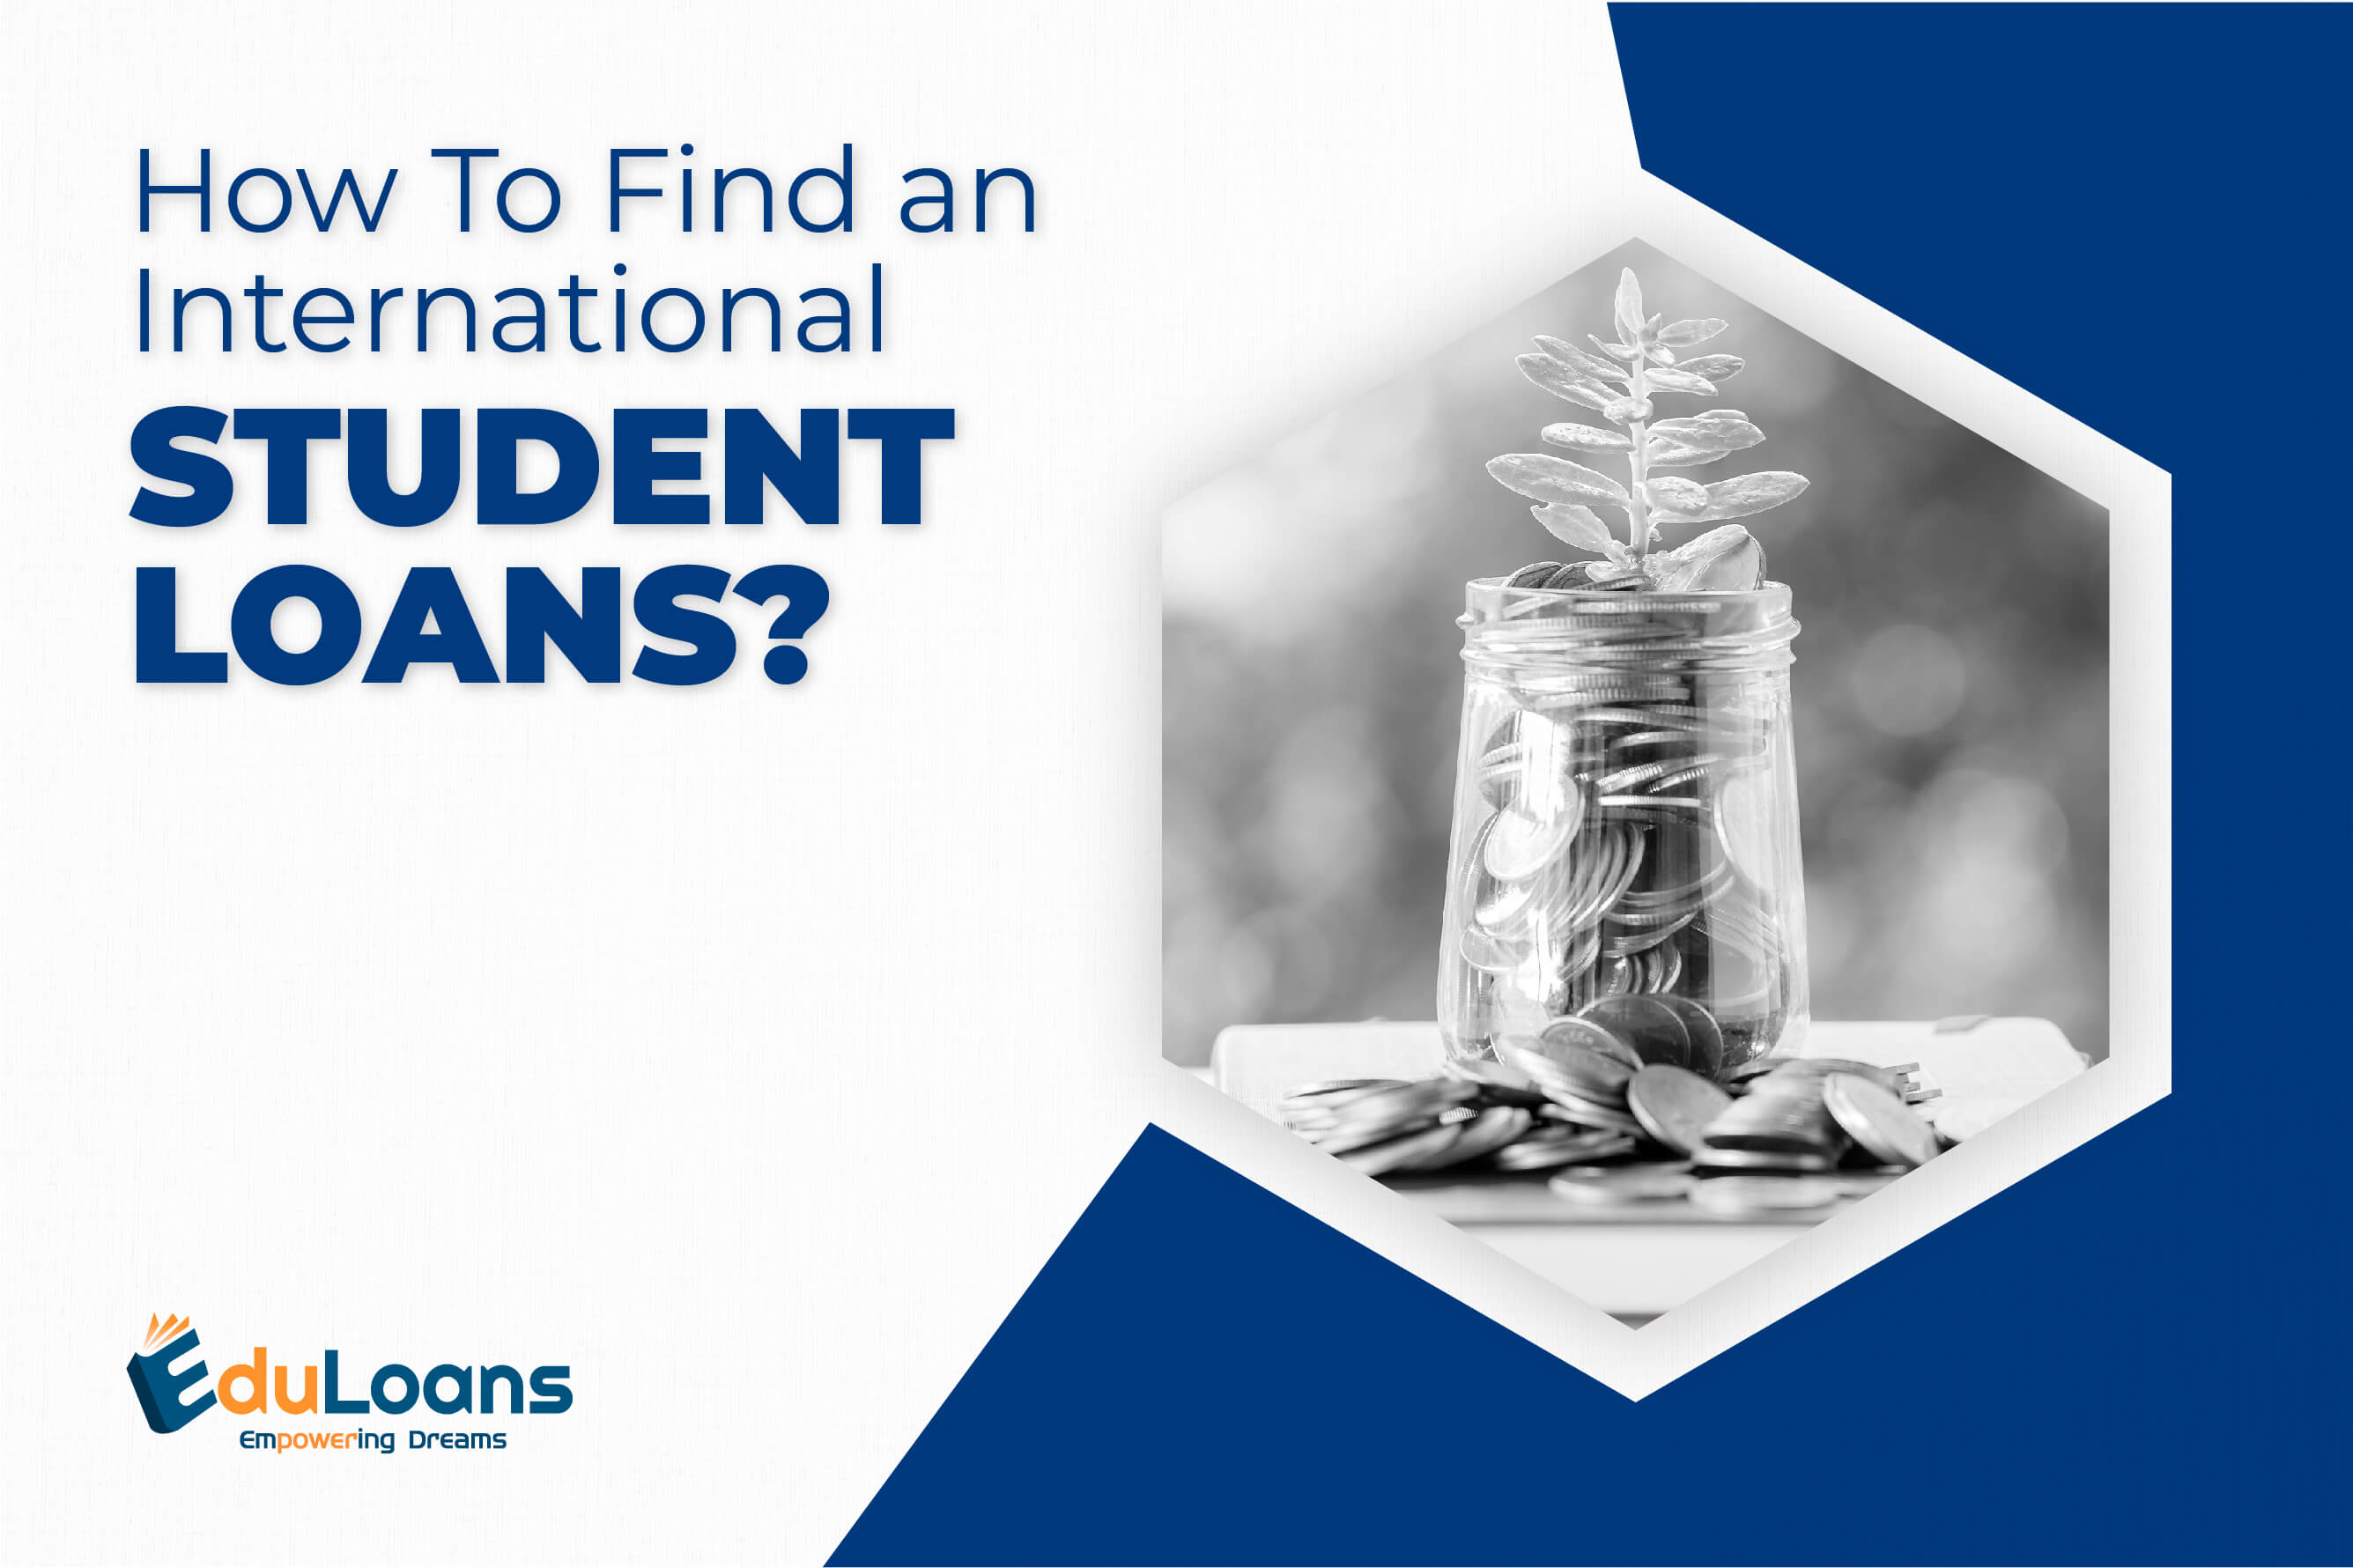 How To Find an International Student Loan?